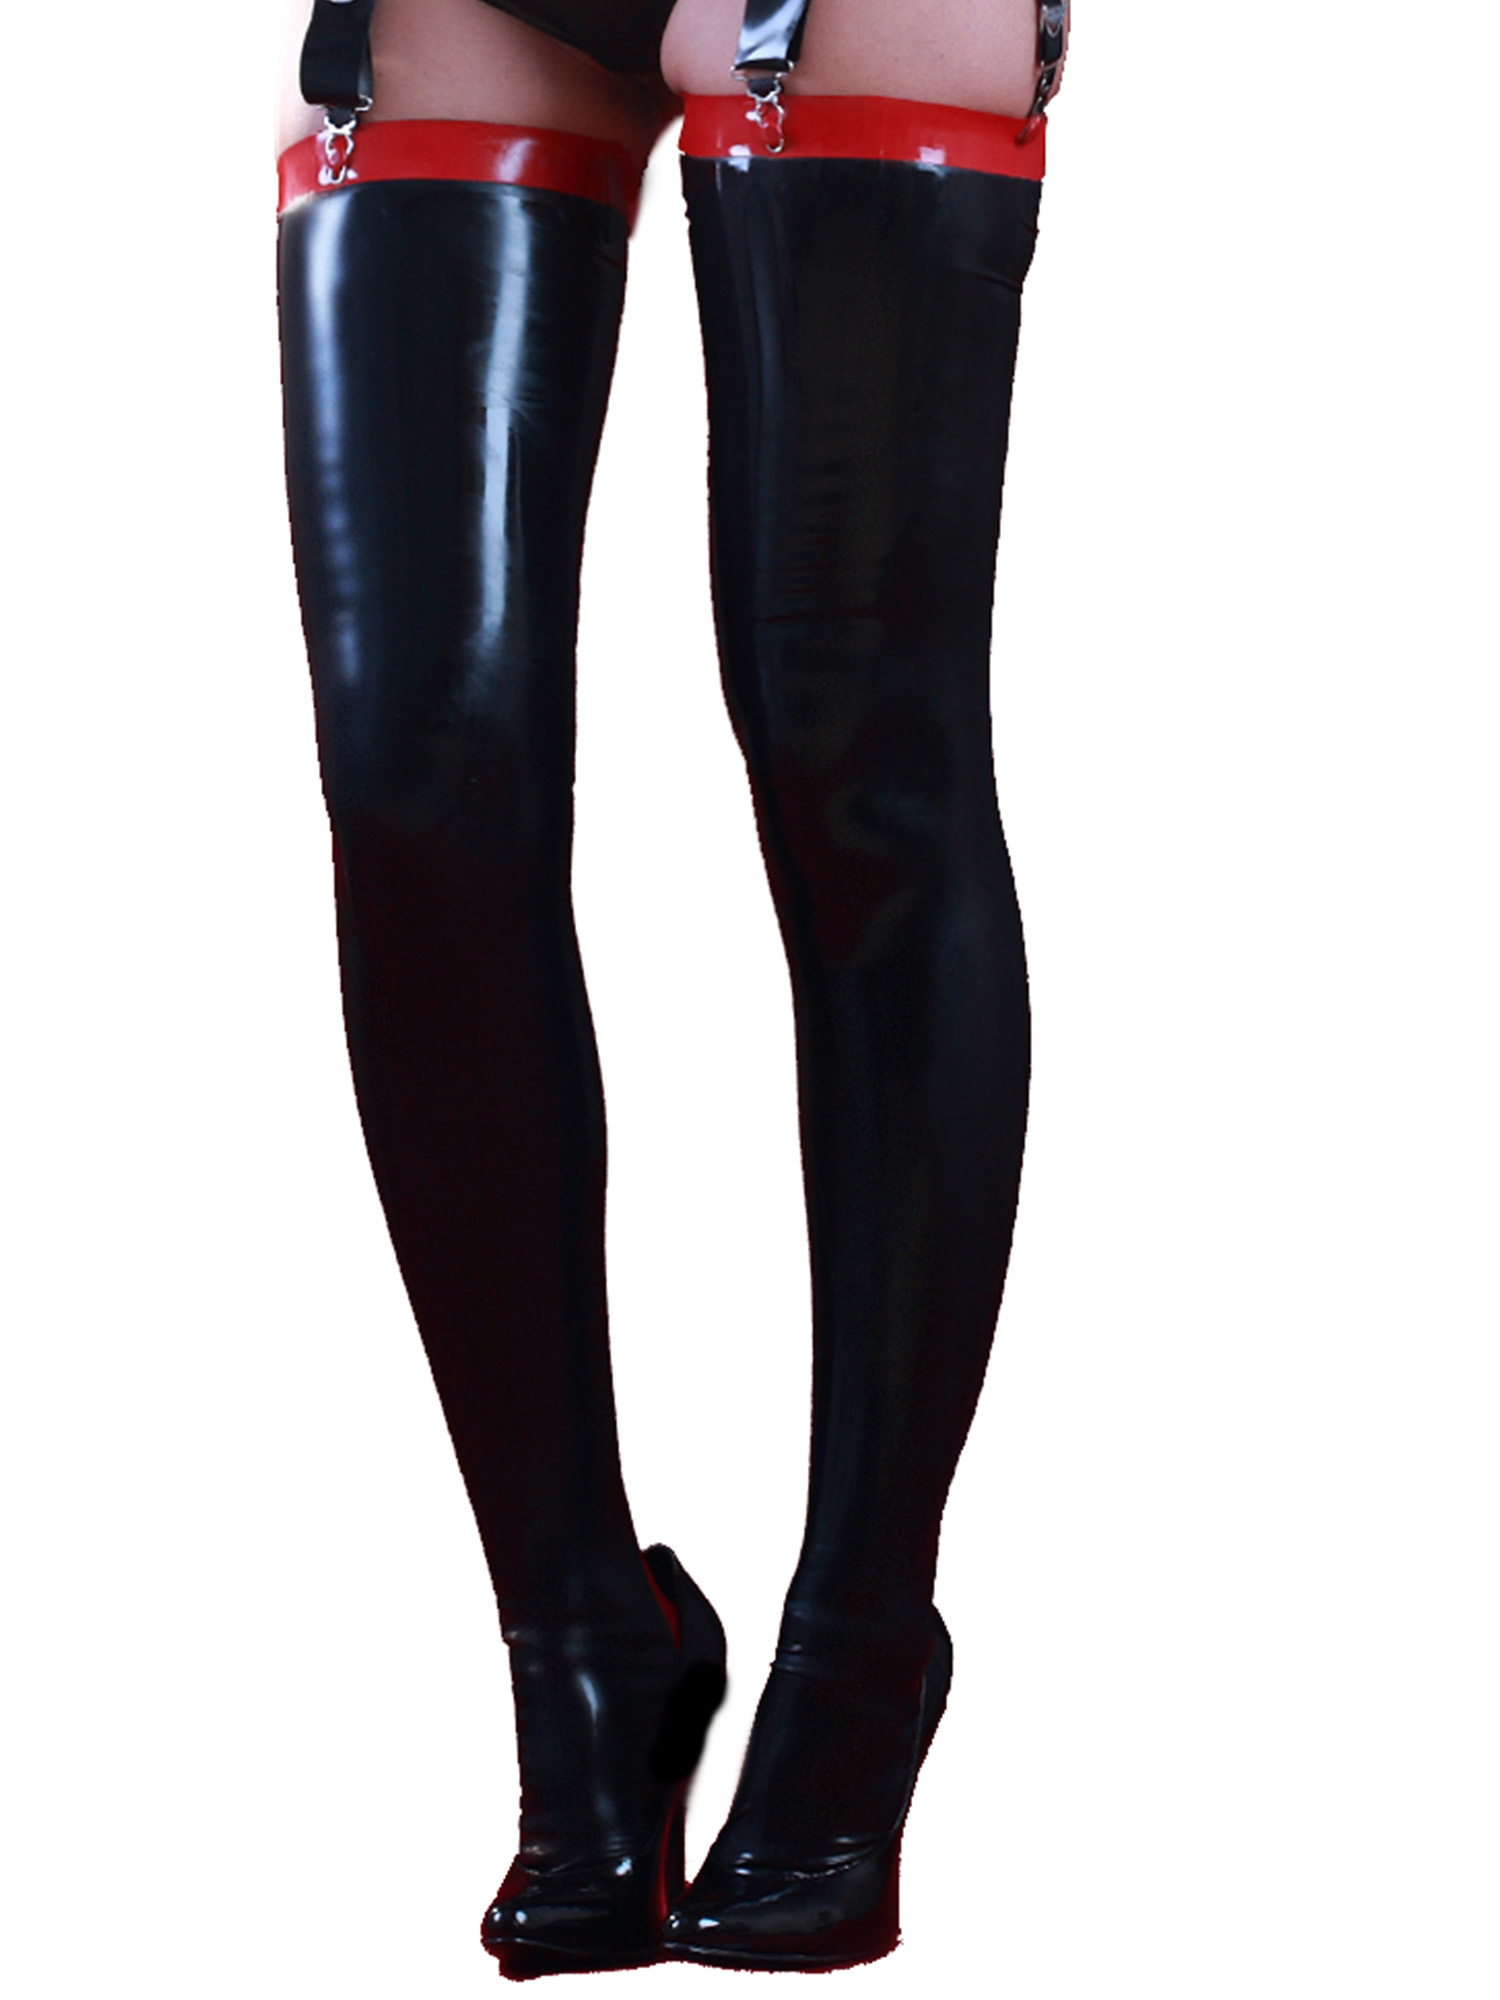 honour women 39 s siren stockings in latex rubber with cuban heel shaped foot ebay. Black Bedroom Furniture Sets. Home Design Ideas